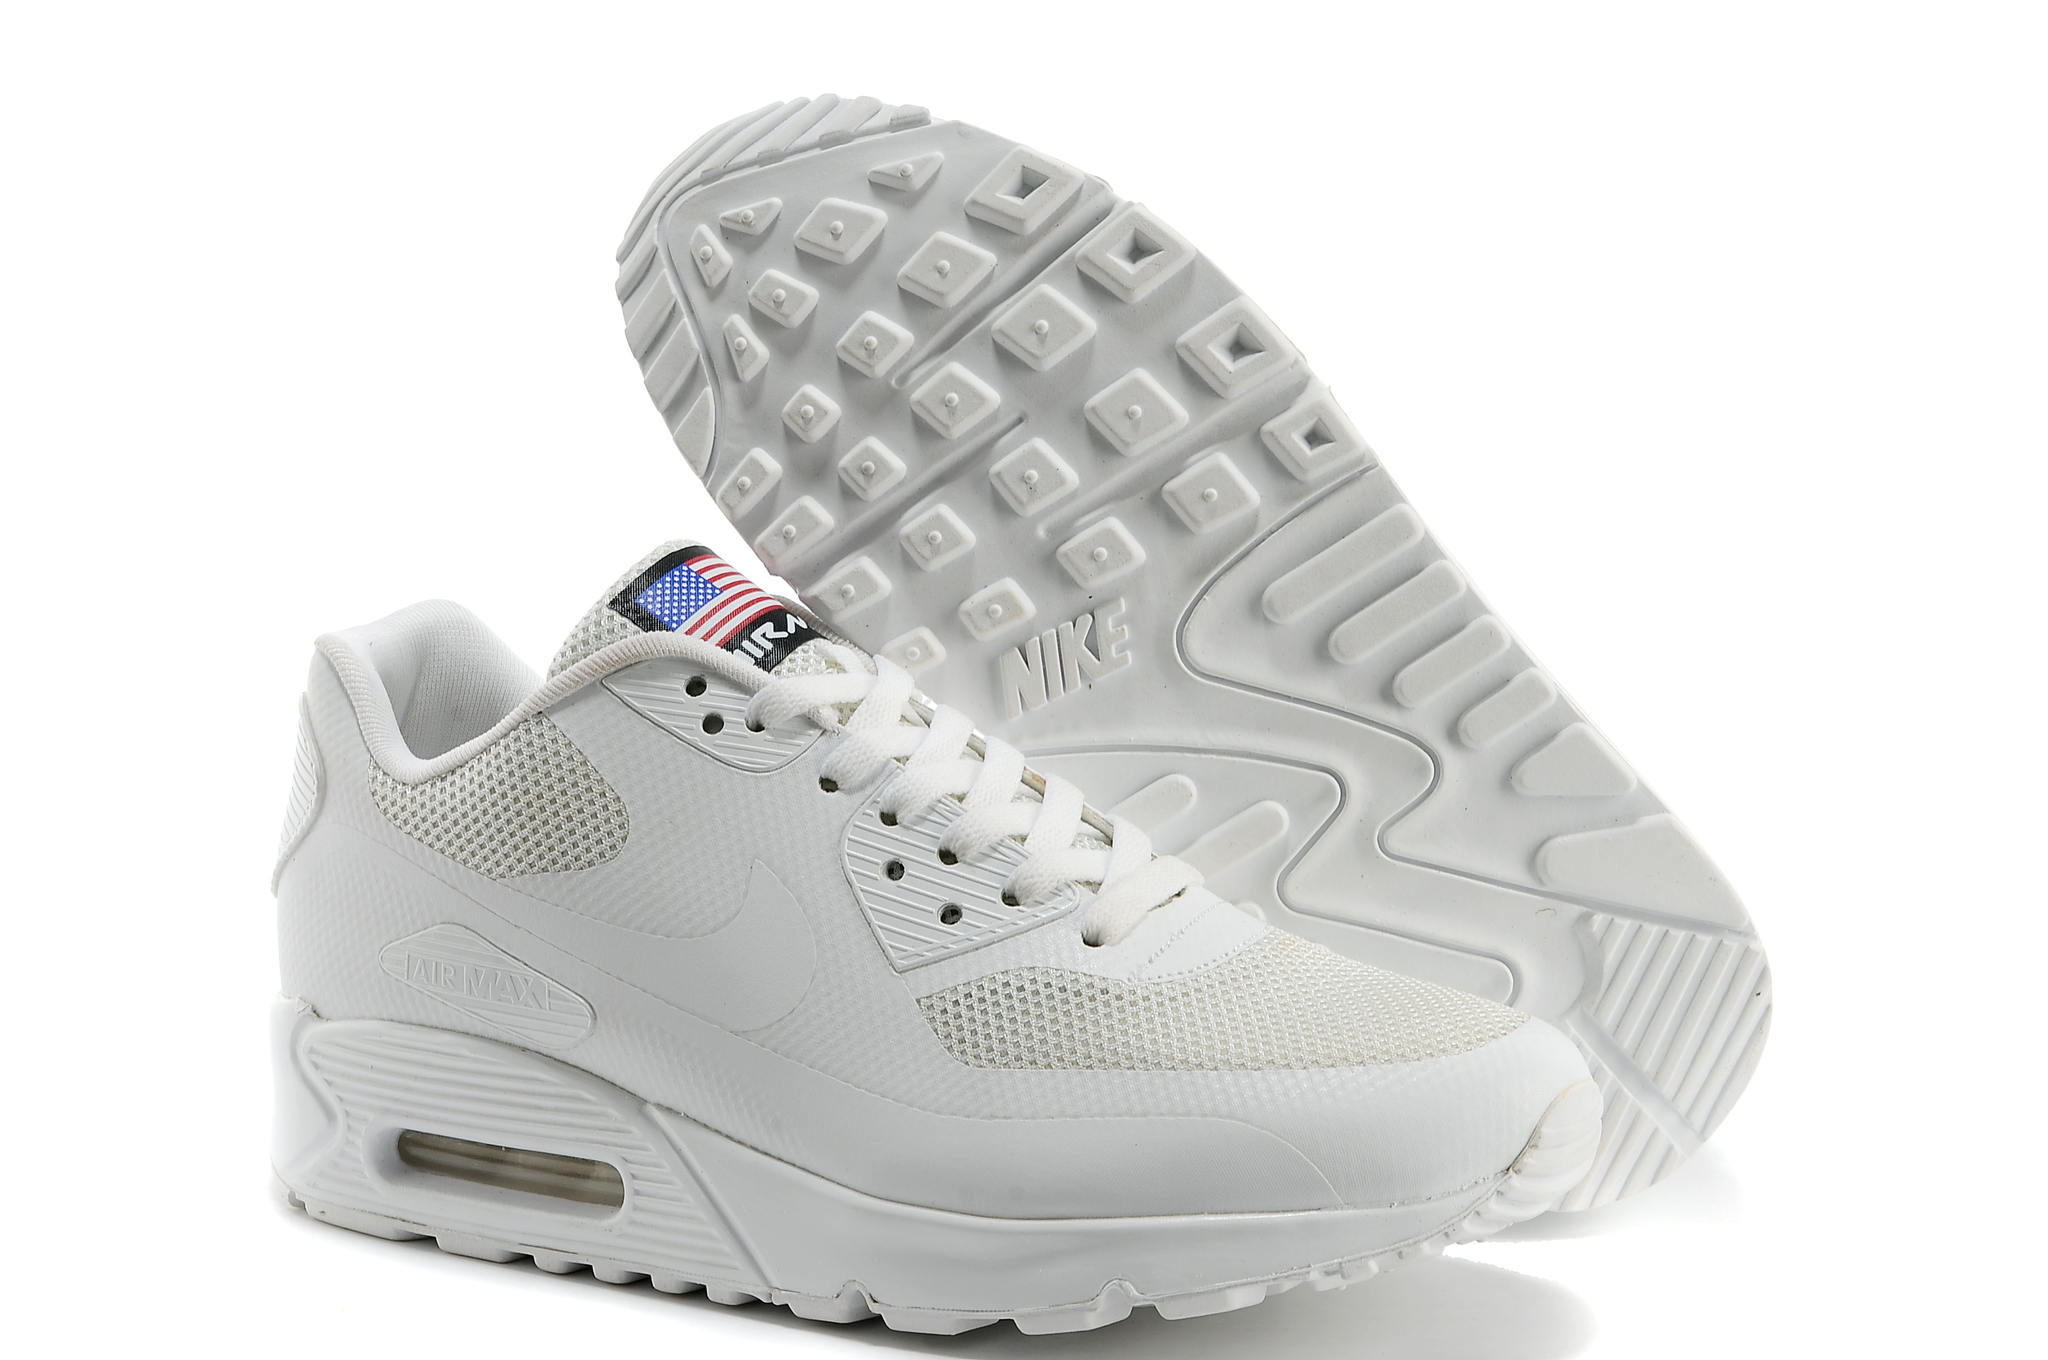 Nike_Air_Max_90_Hyperfuse_Independence_Day_White_Krossoffki.ru.jpg